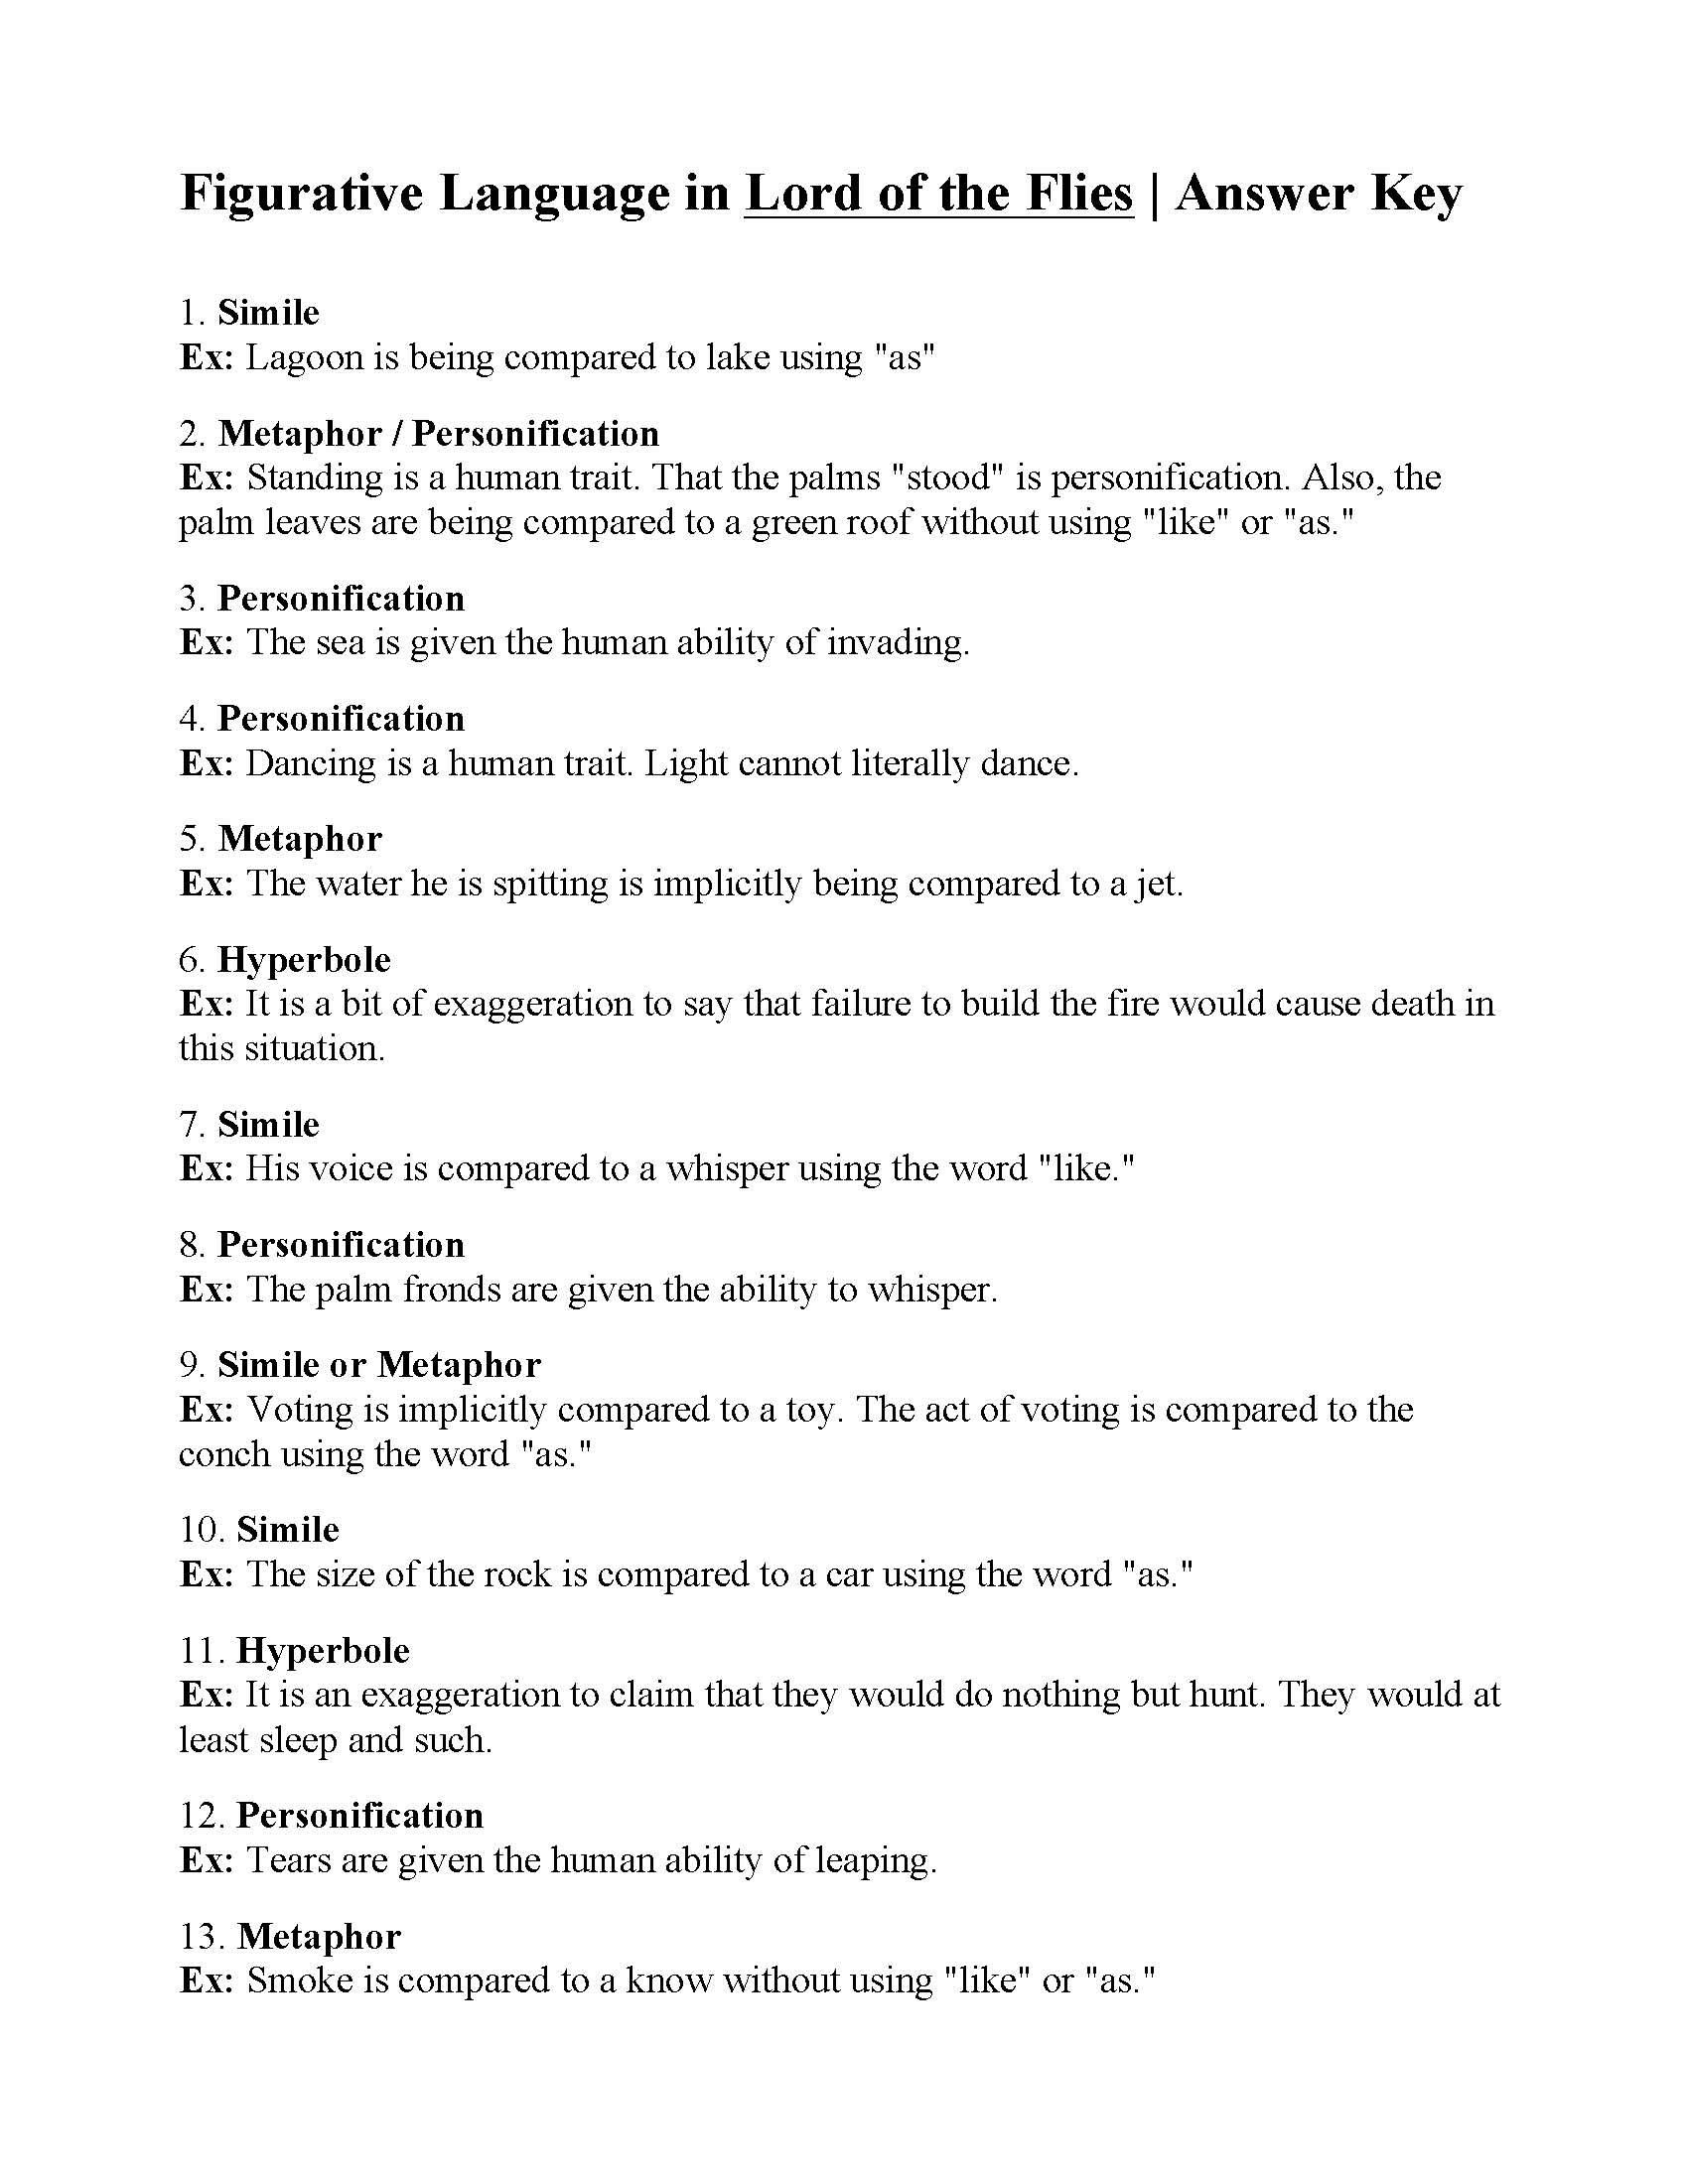 Figurative Language Worksheets High School Figurative Language Worksheet Lord Of the Flies